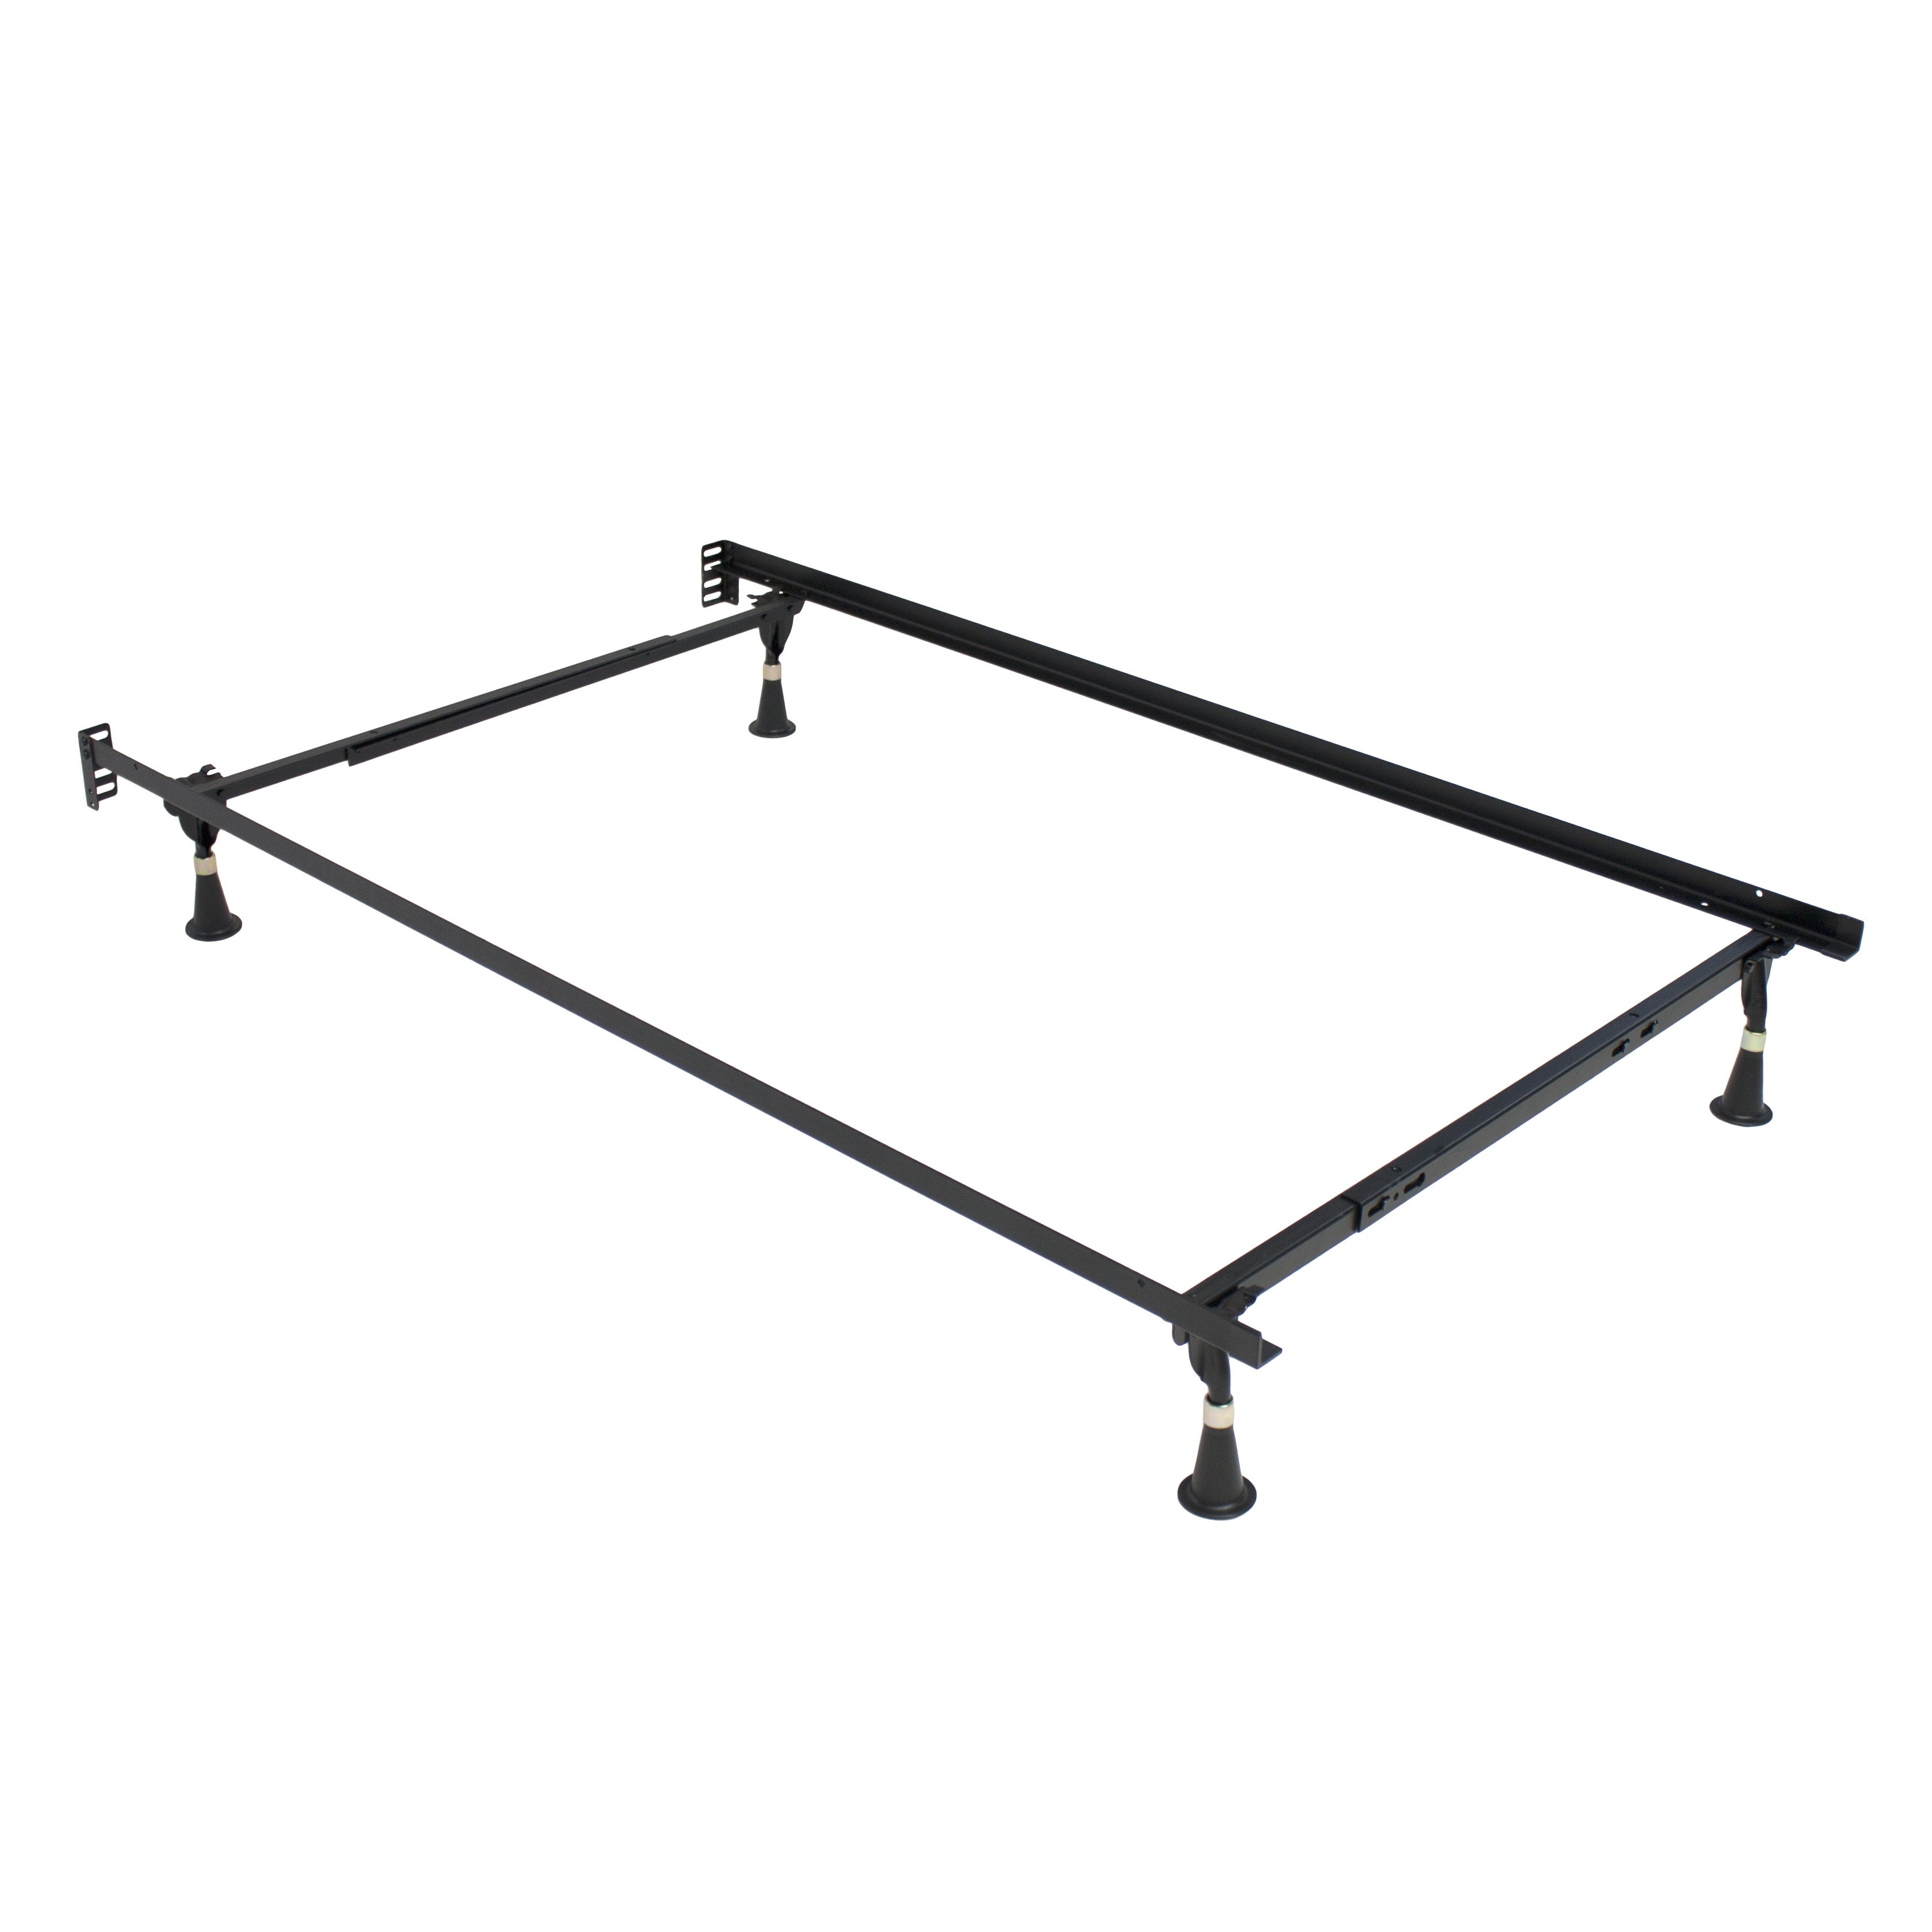 Size Of Xl Twin Bed Frame